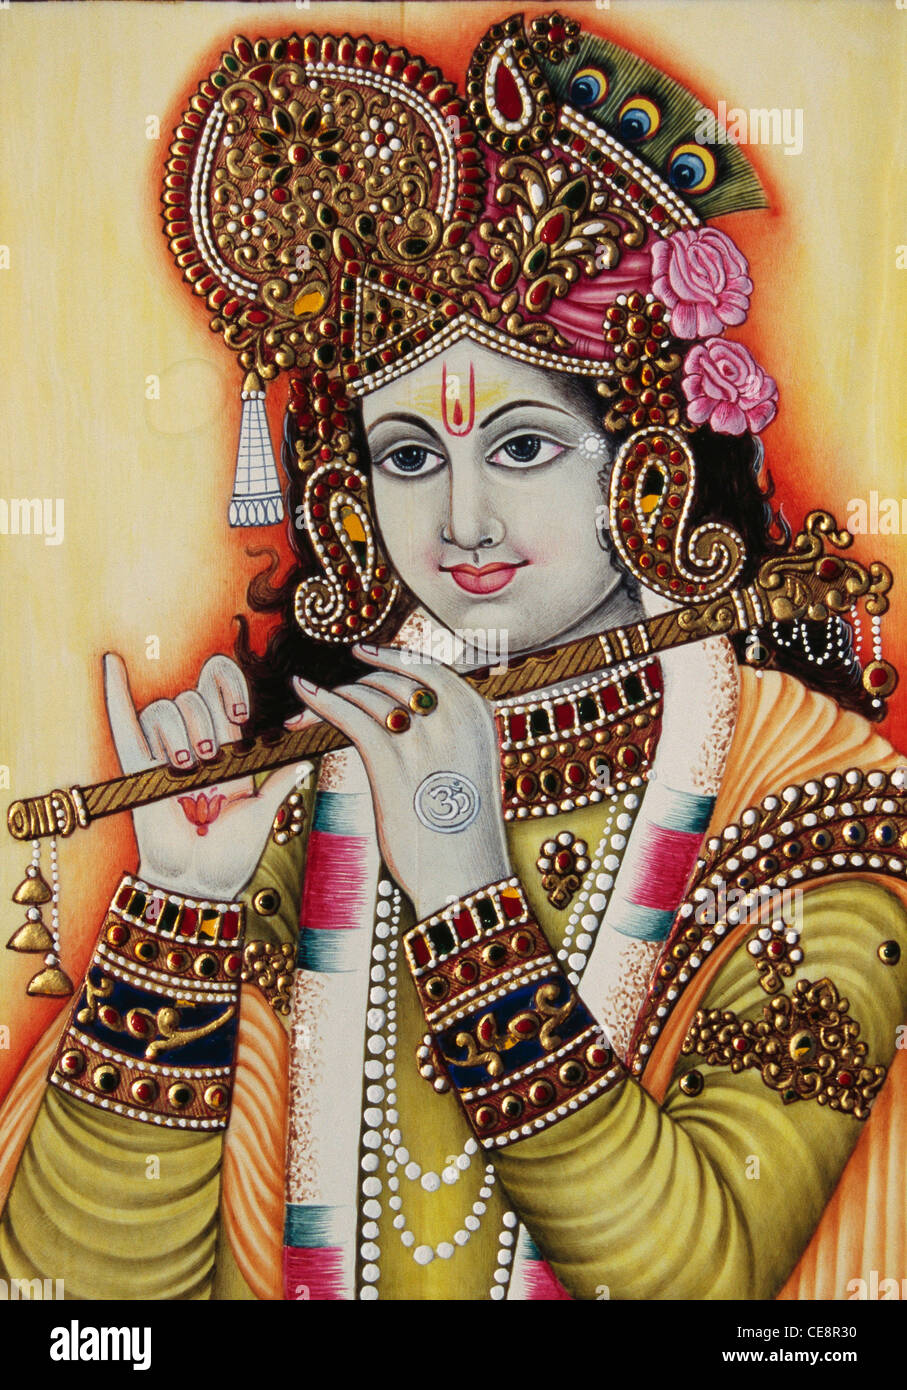 bdr 80566 lord krishna with musical instrument flute miniature painting CE8R30